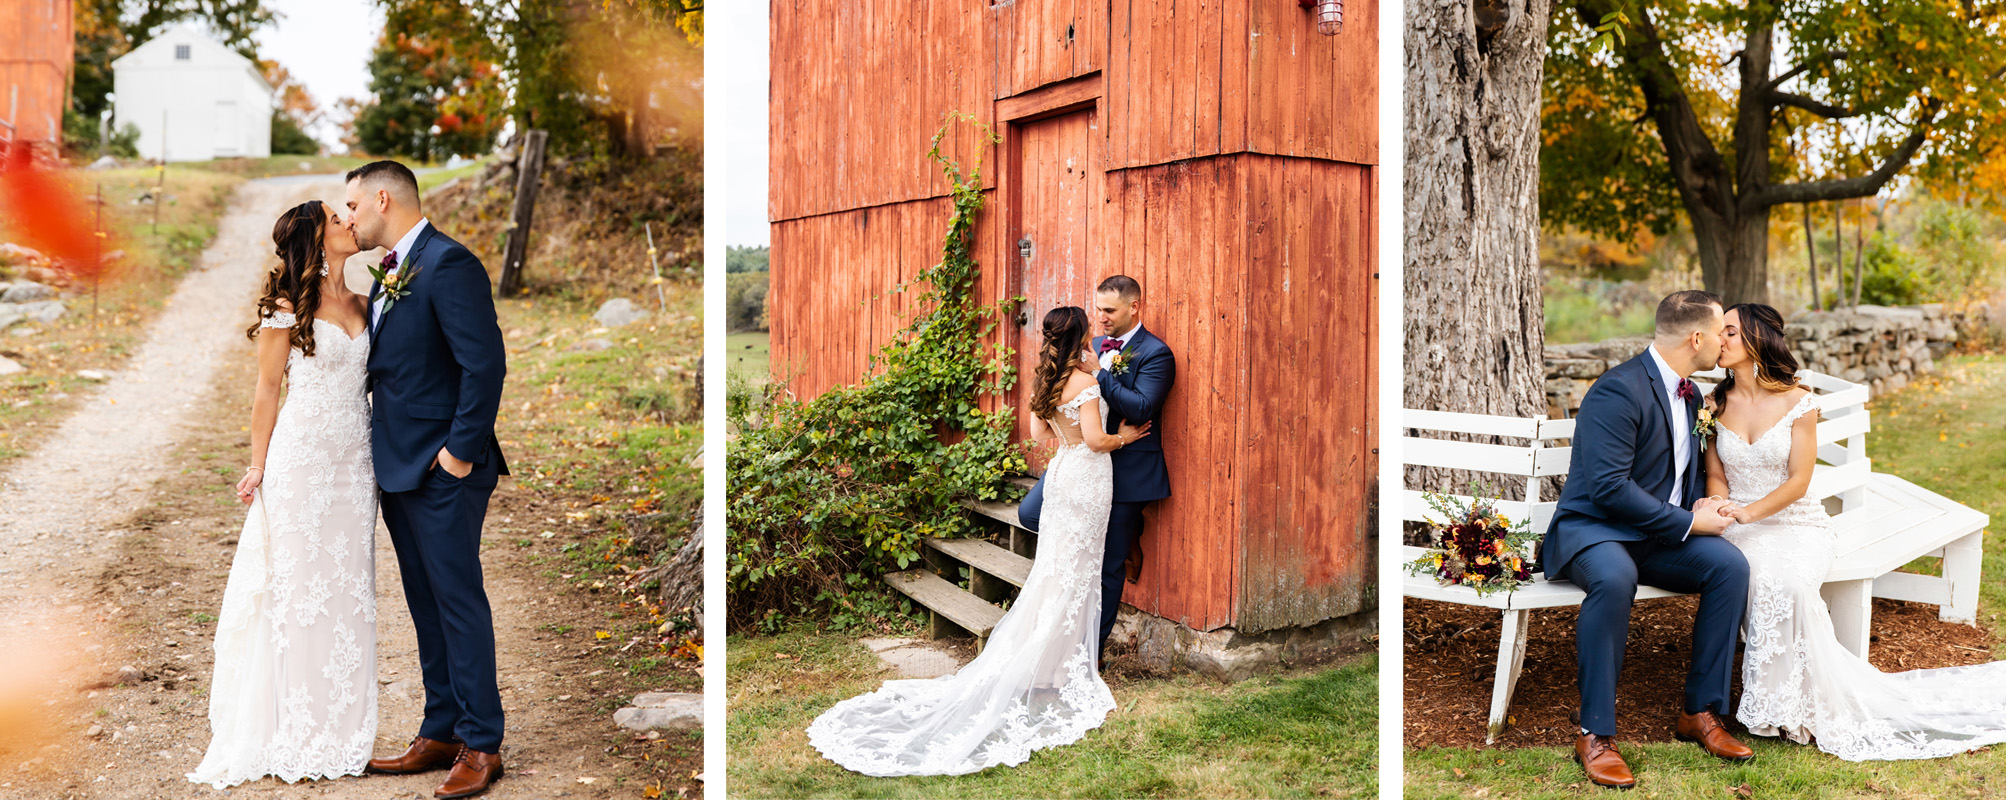 4 Reasons Why Salem Cross Inn is the Perfect New England Wedding Venue